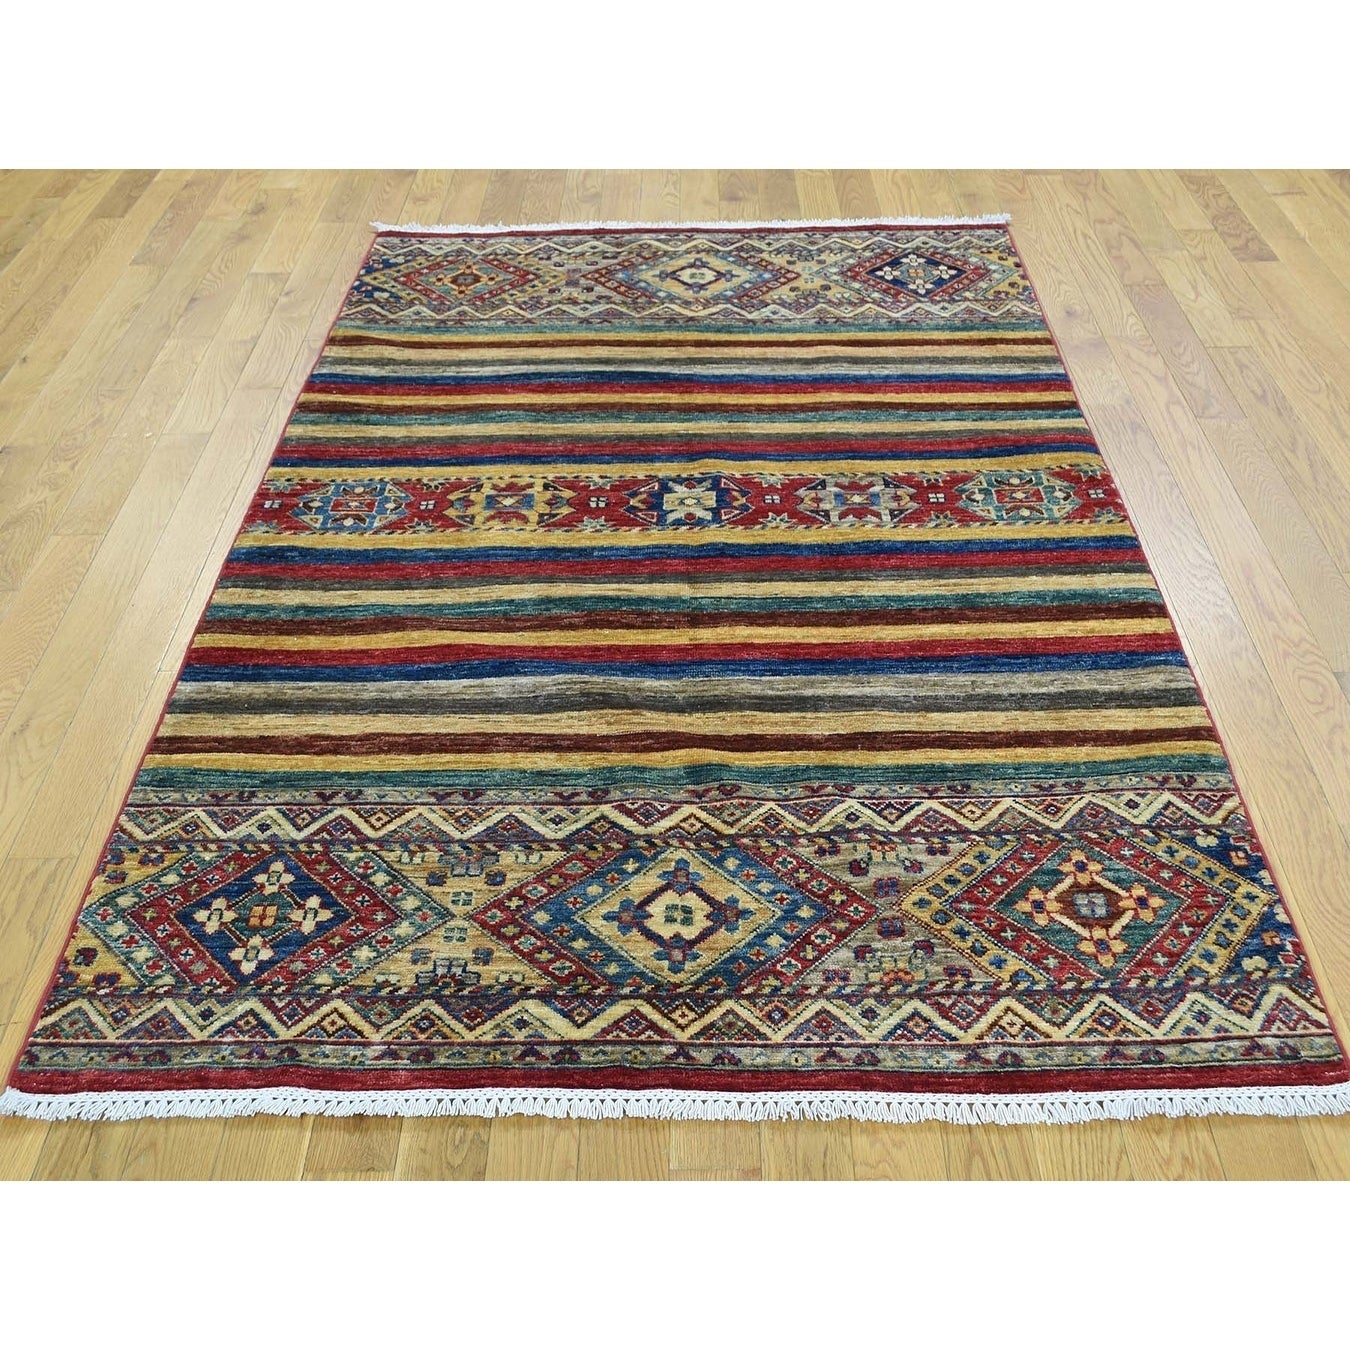 Hand Knotted Multicolored Kazak with Wool Oriental Rug - 43 x 65